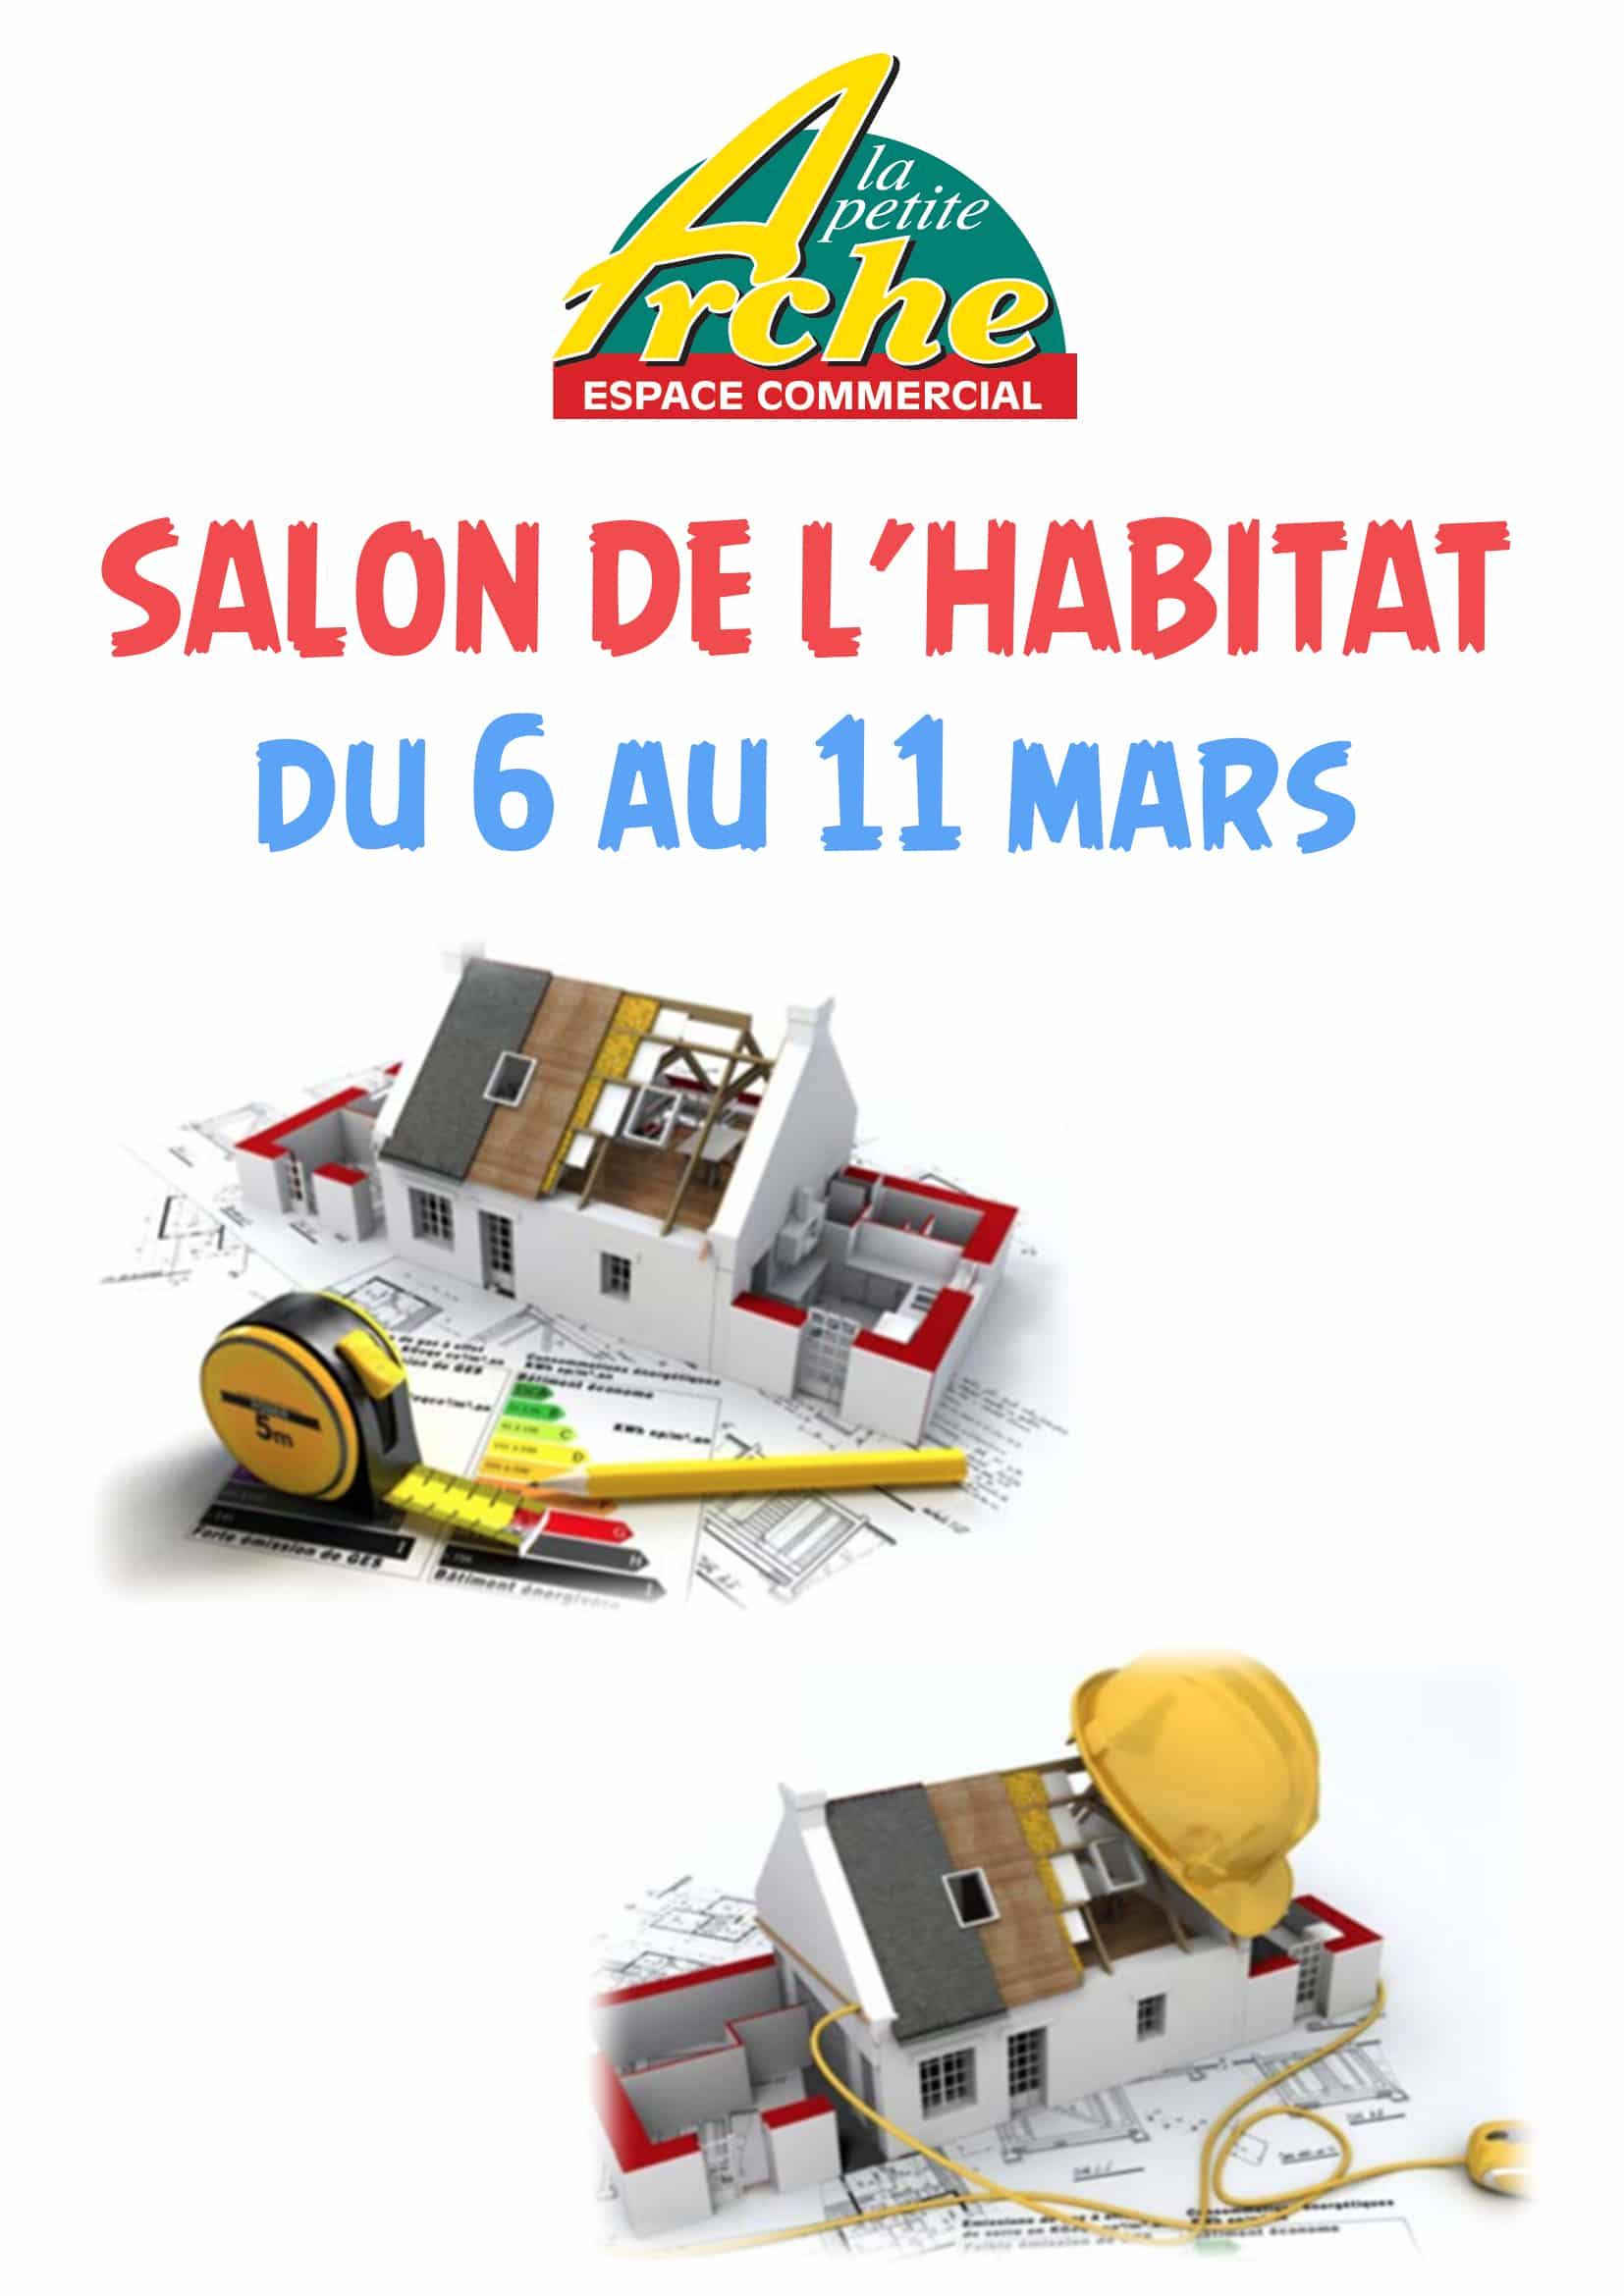 06 au 11 mars 2017 salon de l immobilier et de l habitat auchan tours nord. Black Bedroom Furniture Sets. Home Design Ideas